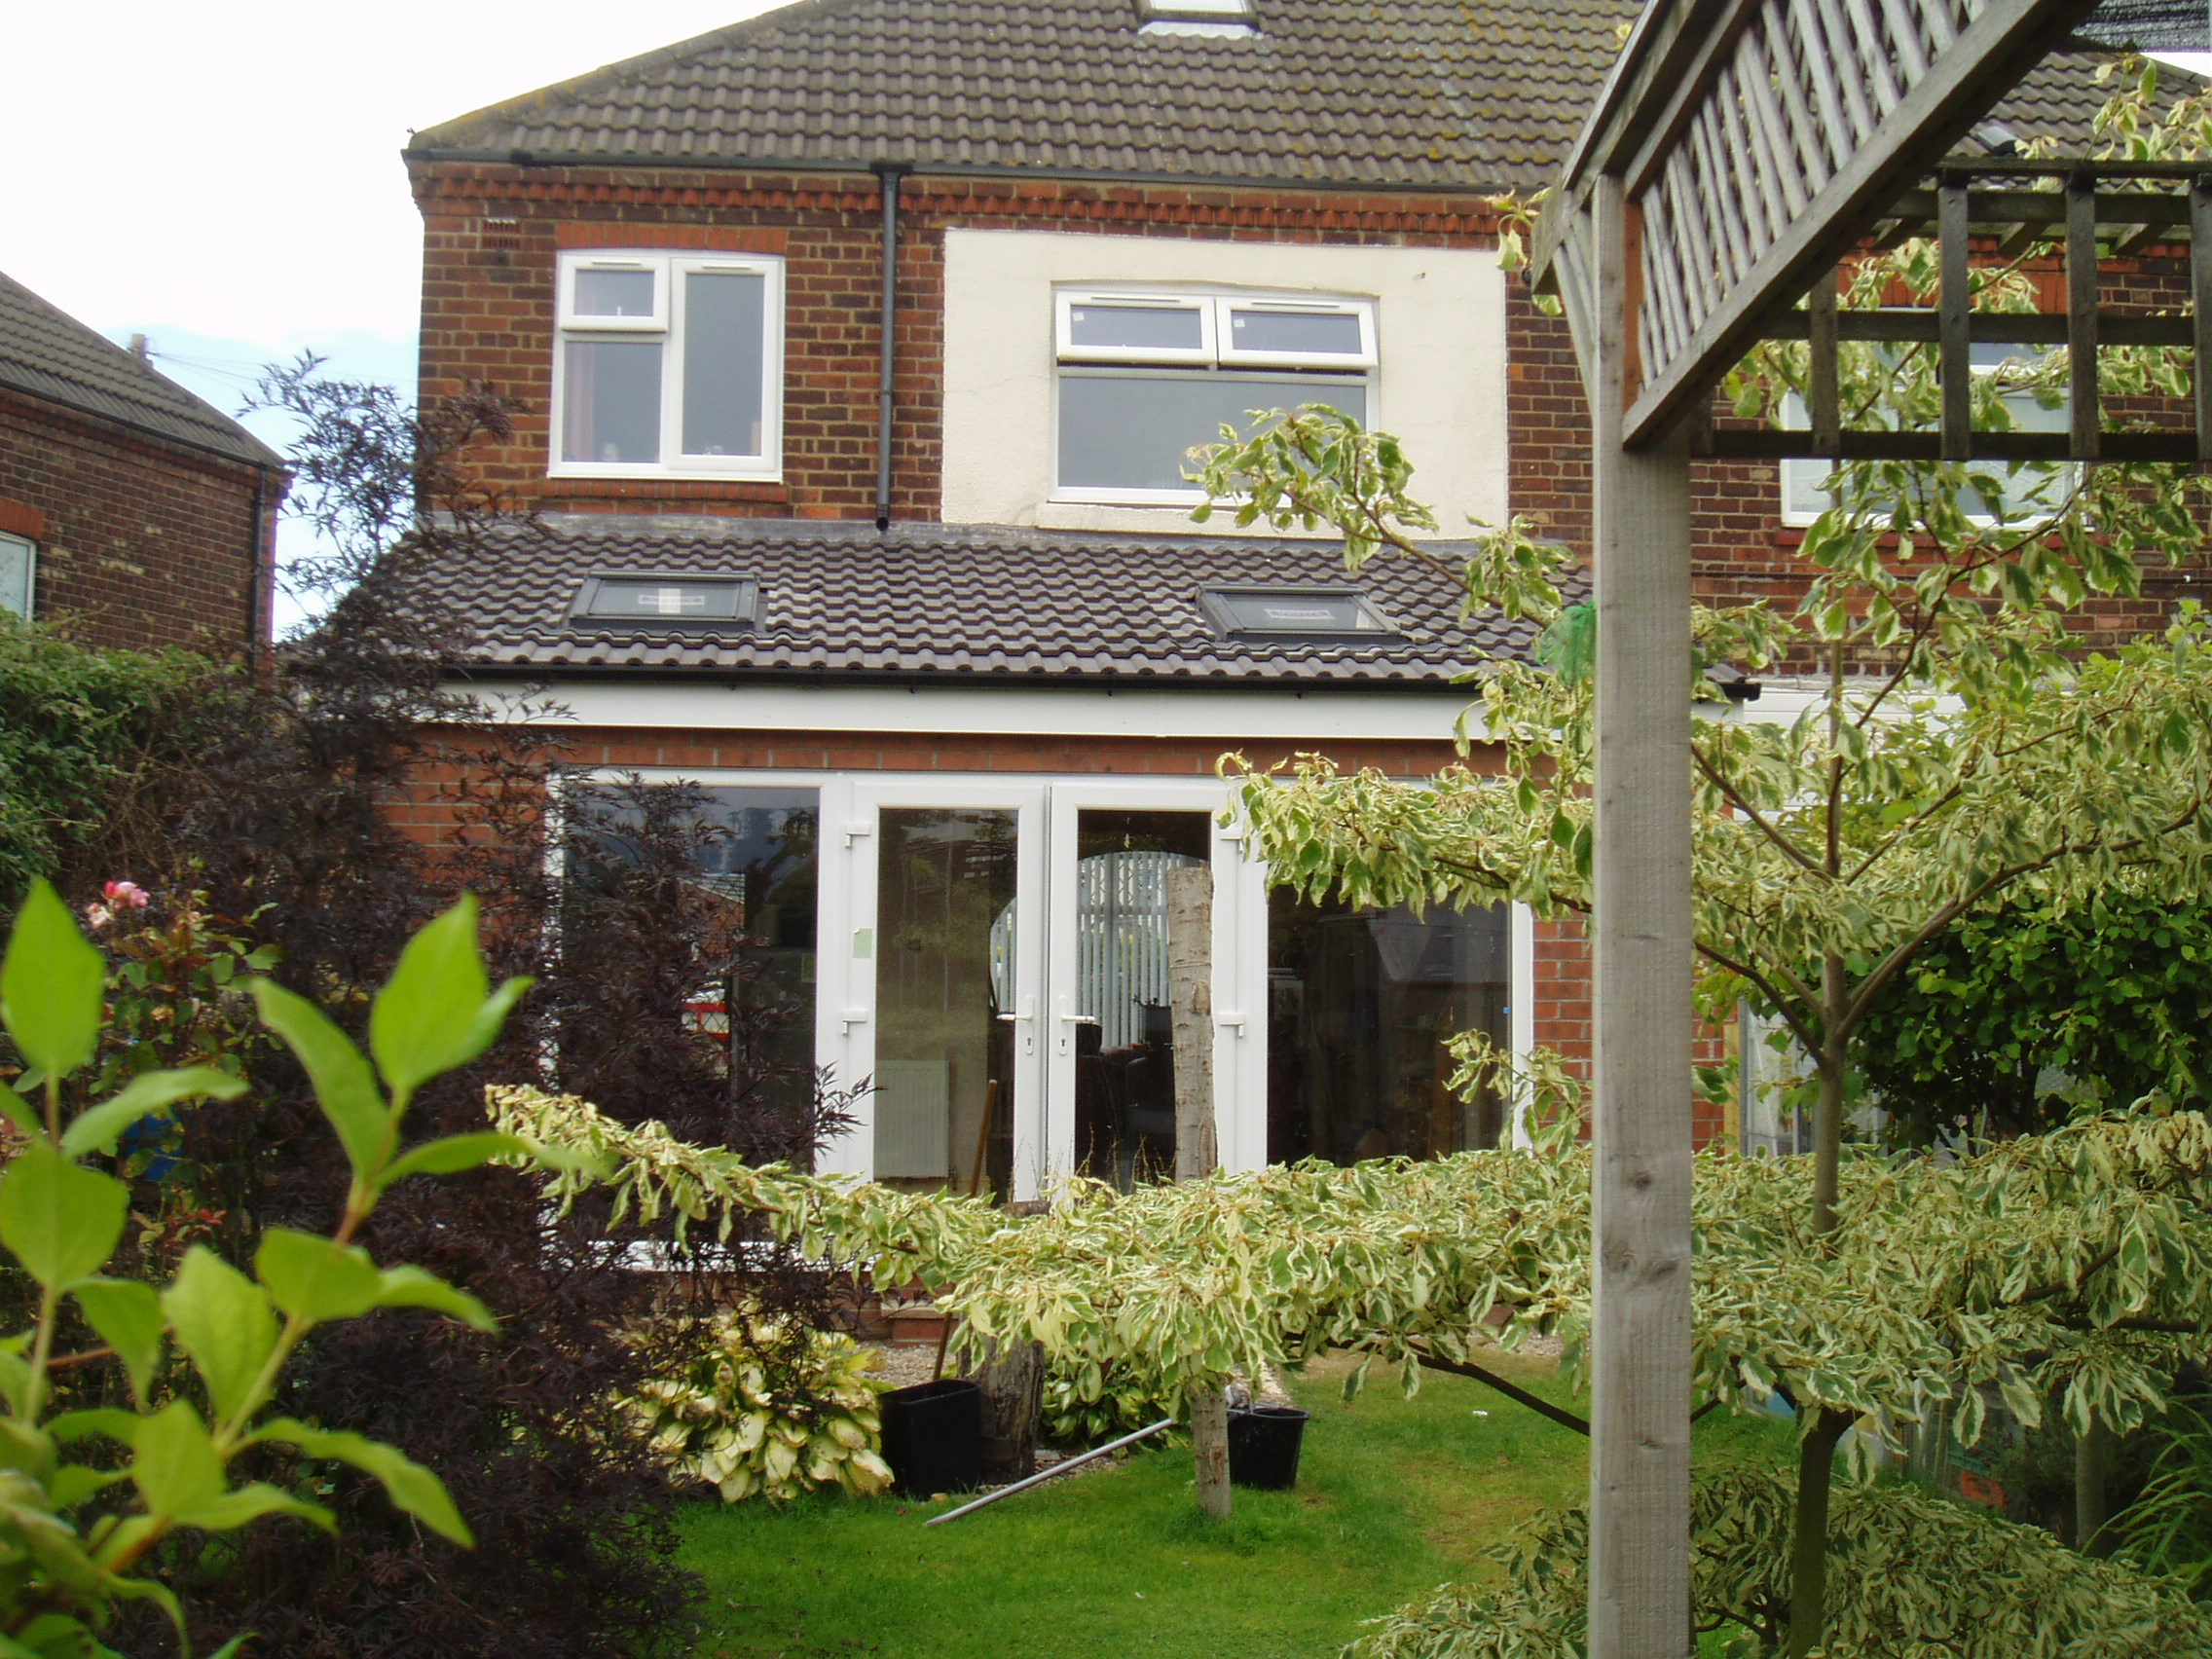 Single Home Extension  Riversdale Hull. Home extension builder   Total Improvements Limited Builders Hull